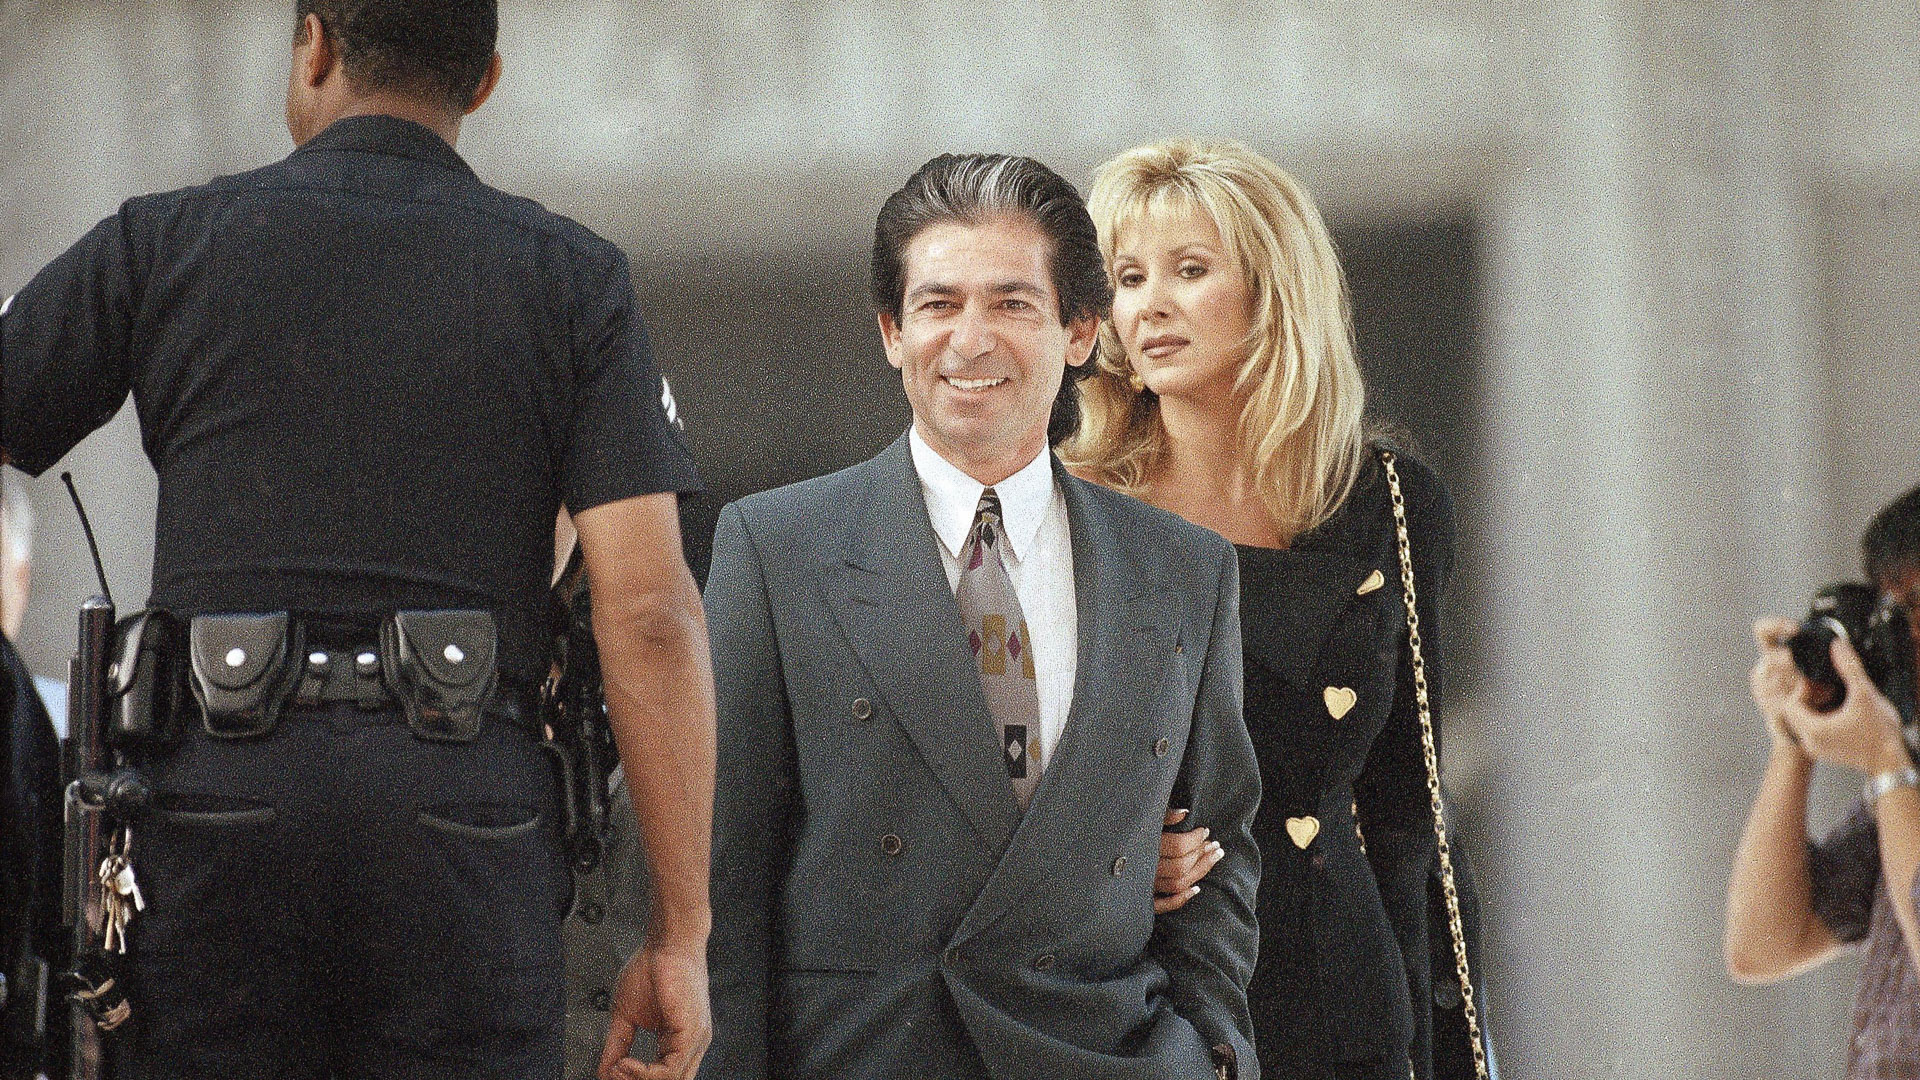 Mandatory Credit: Photo by Dana Fisher/AP/REX/Shutterstock (6526165a) Robert Kardashian, Denice Shakarian Halicki O.